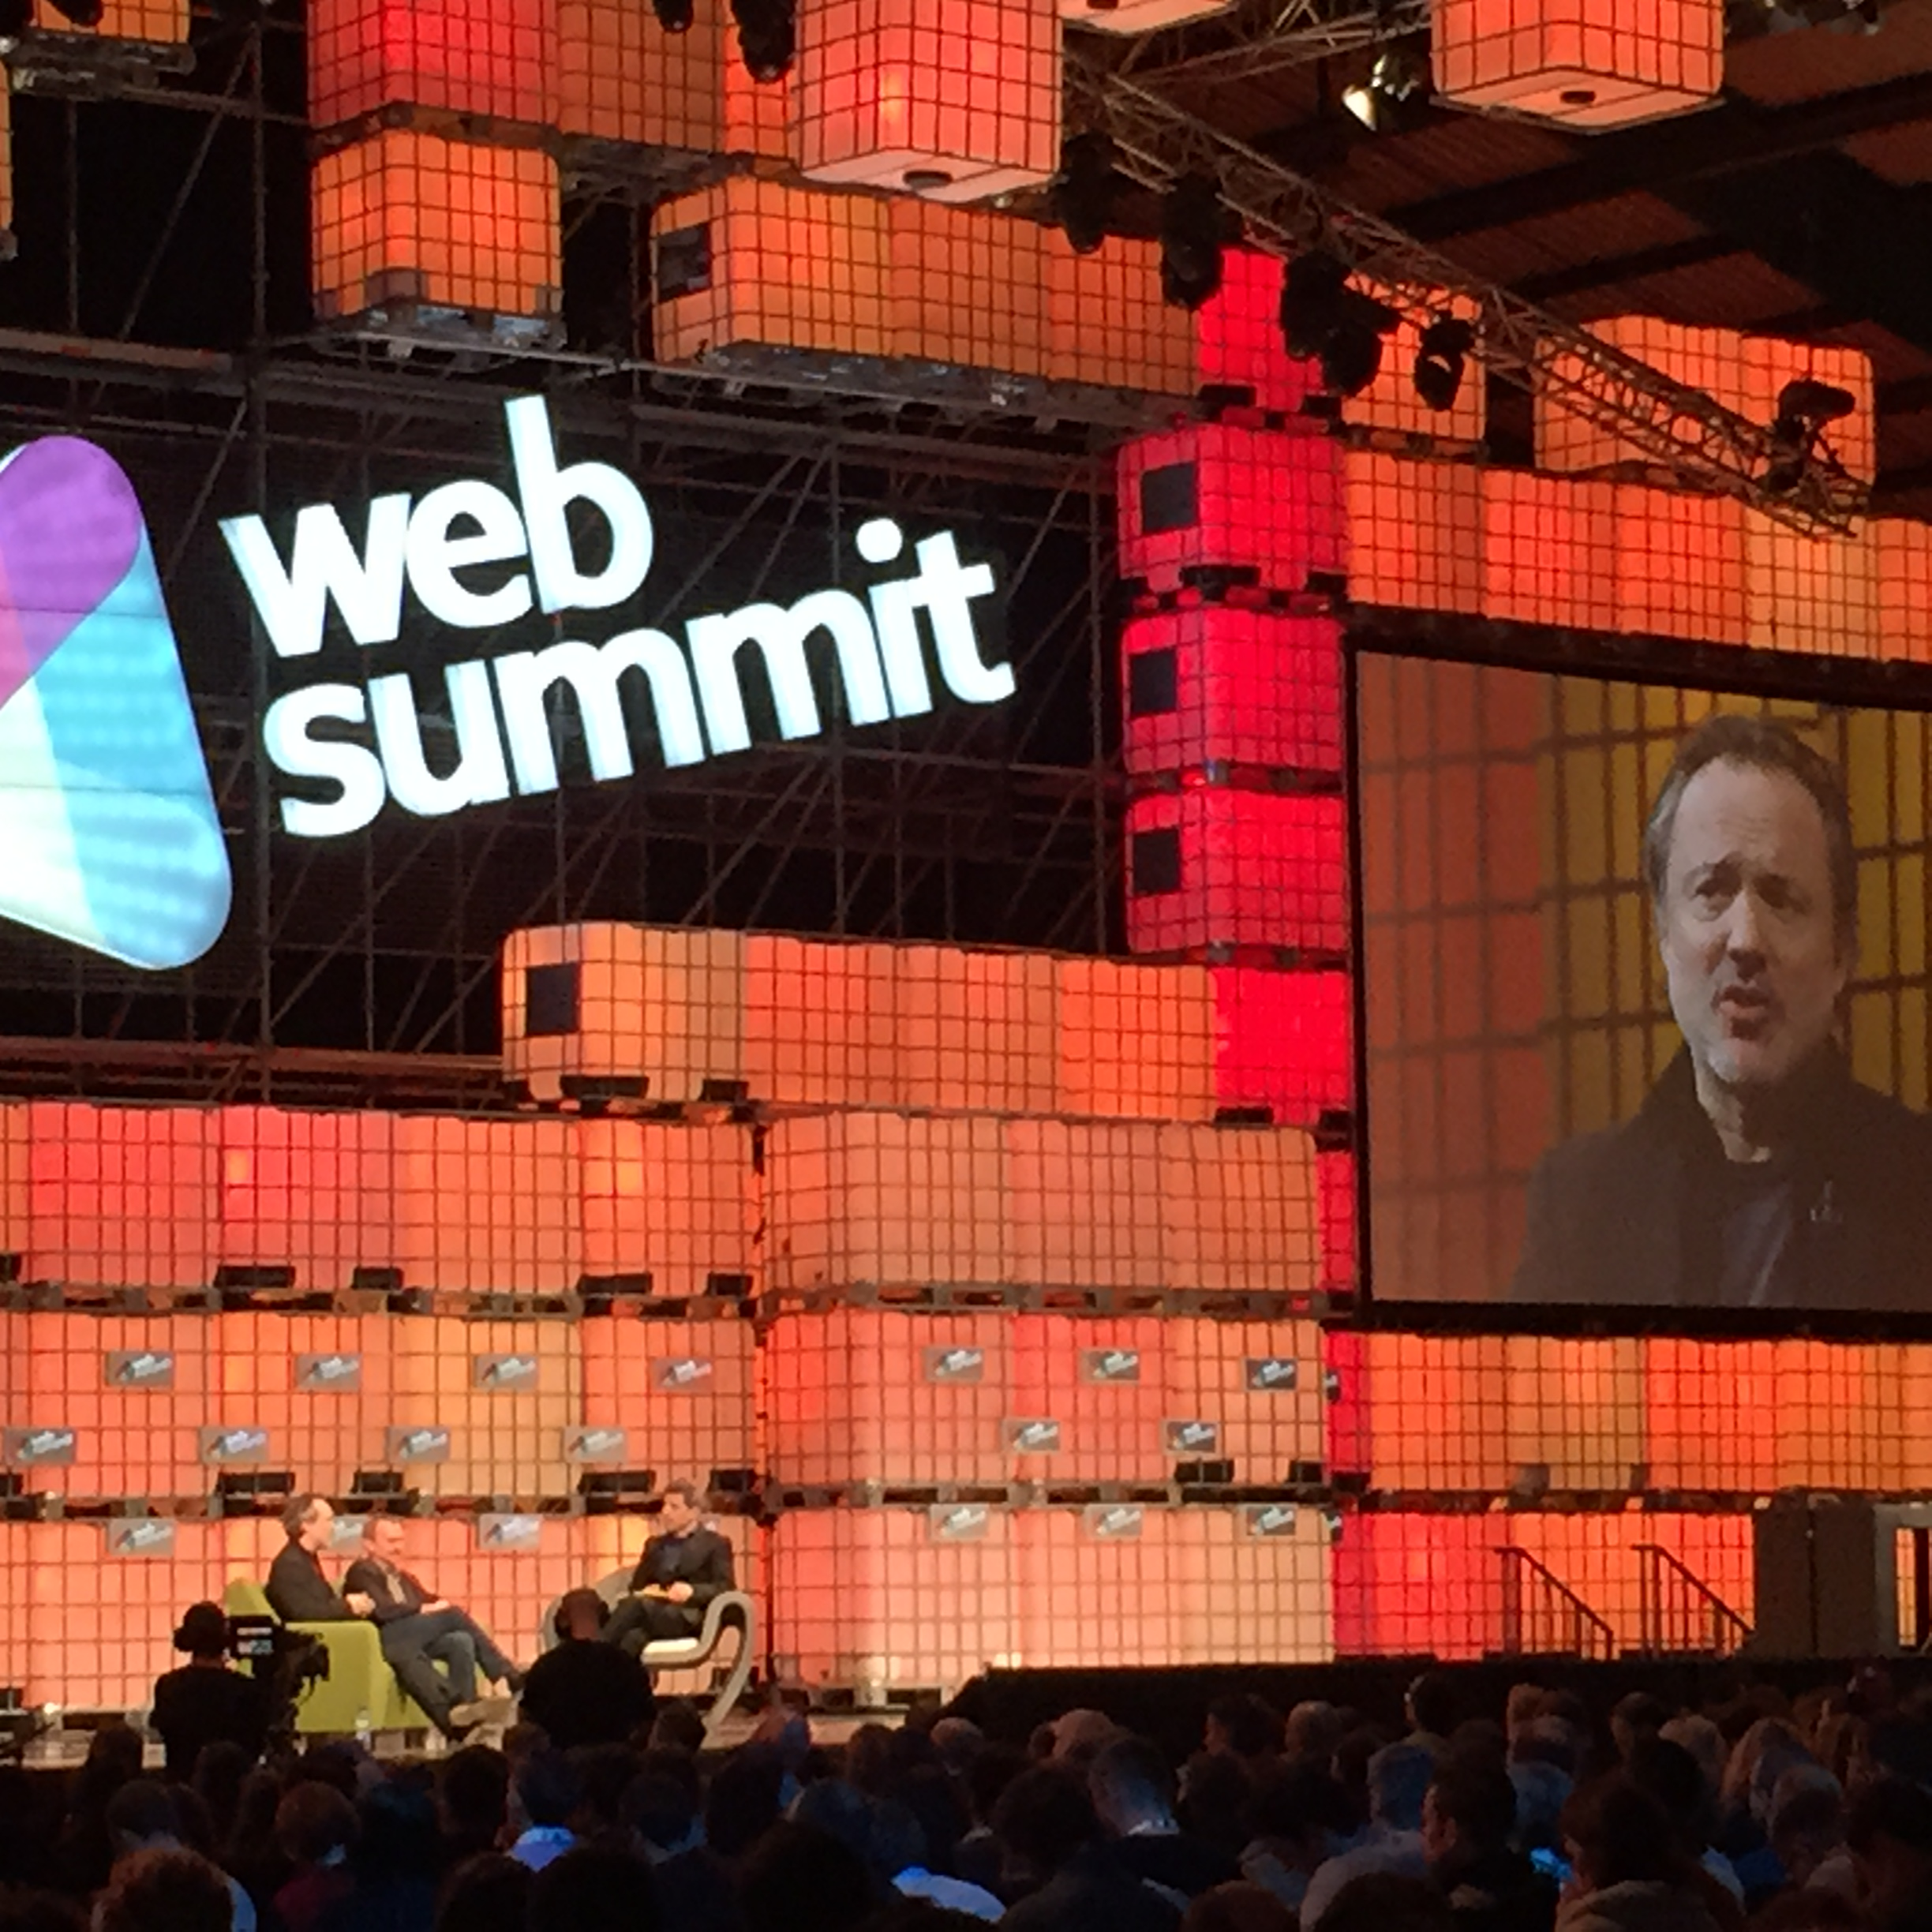 WebSummit 2014